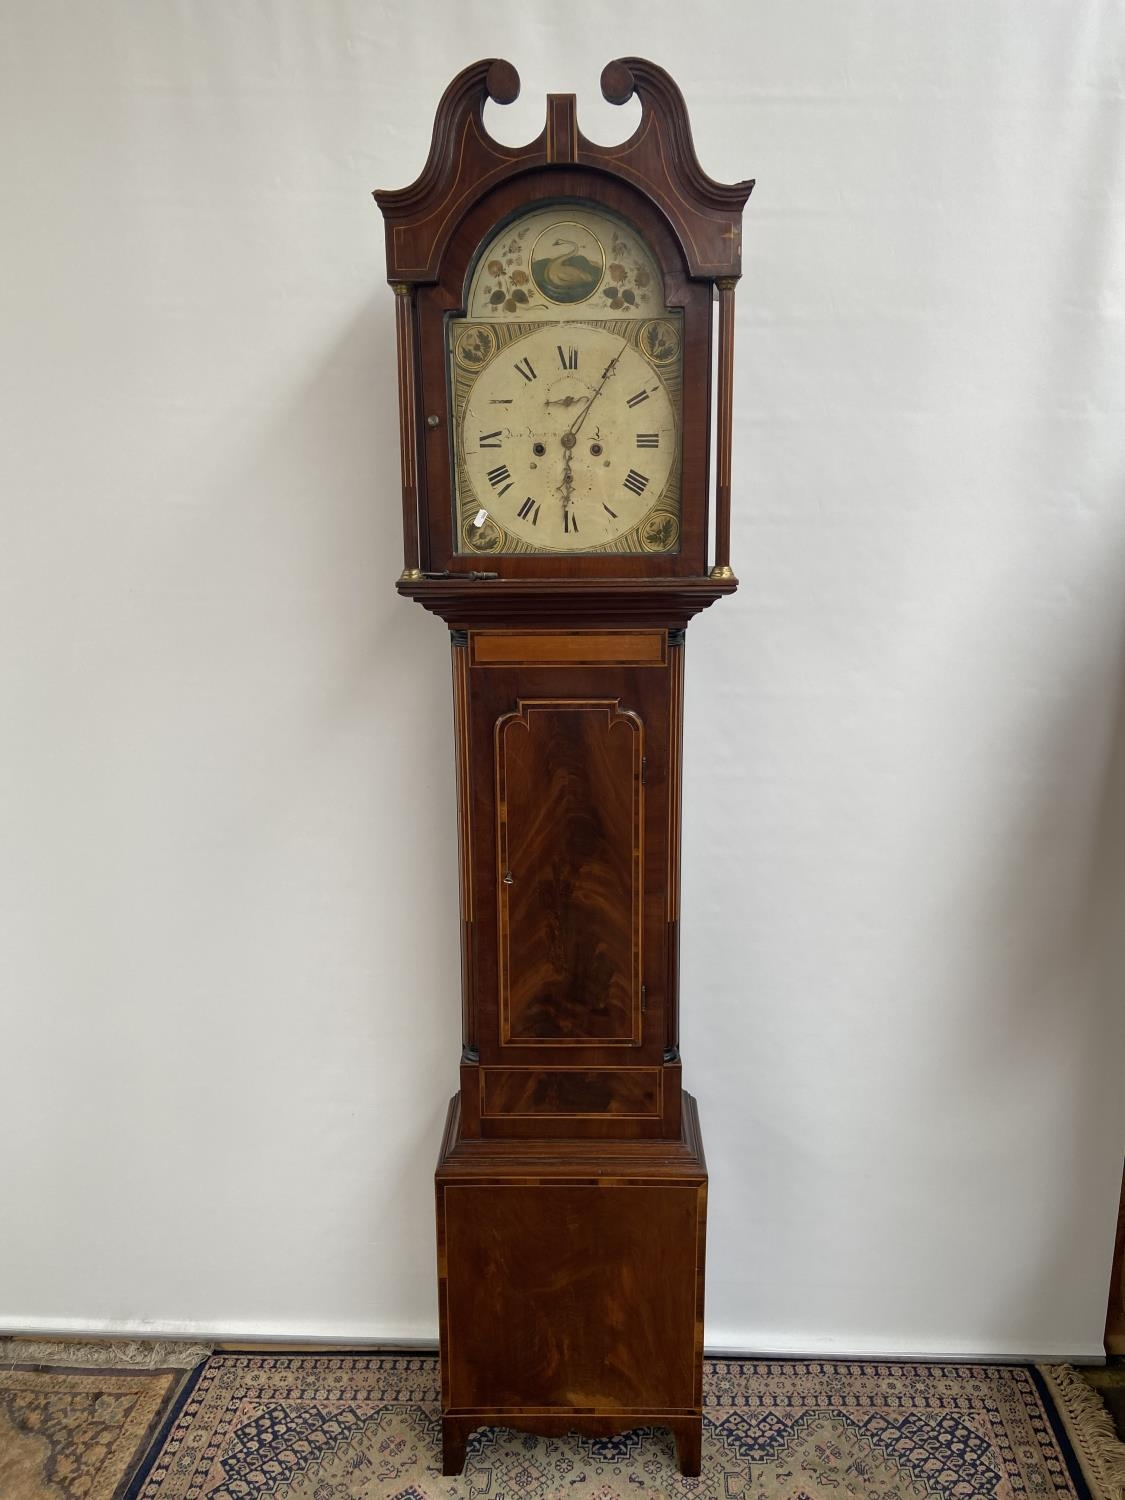 A 19th century Grandfather clock in a working condition [24x44x24cm]